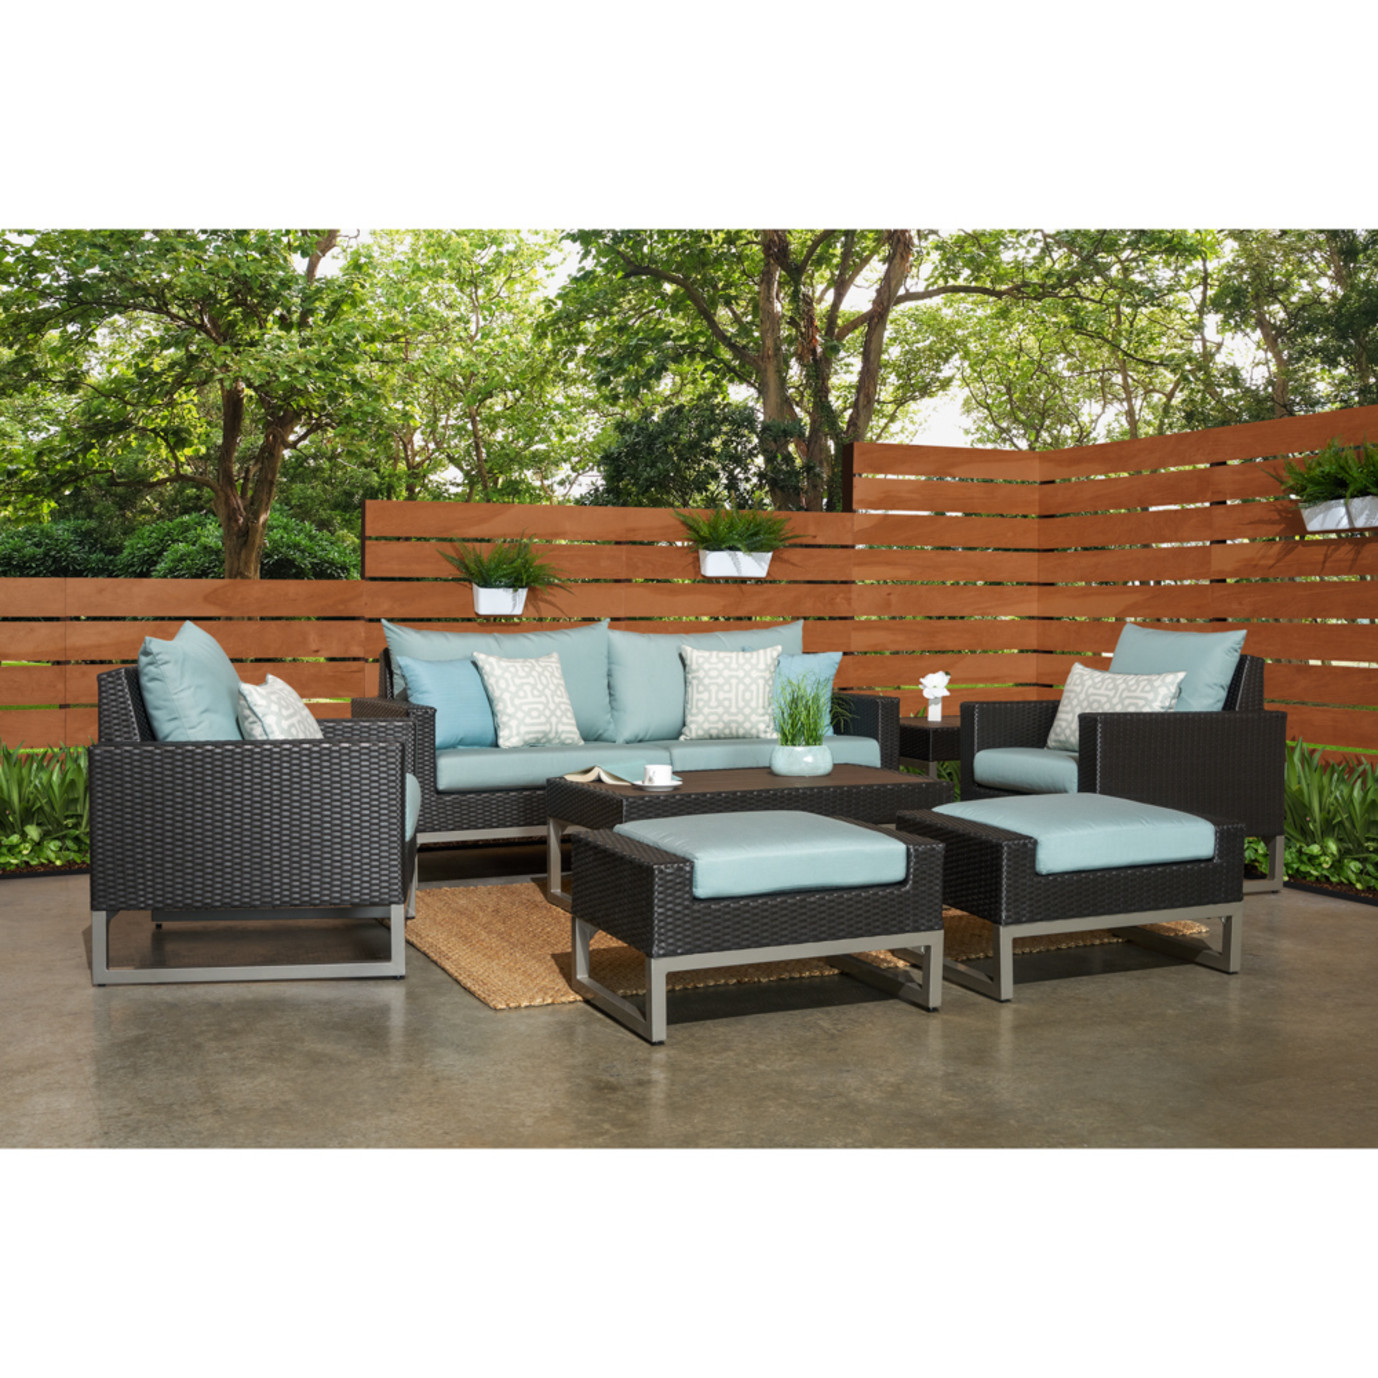 Milo™ Espresso 7 Piece Deep Seating Set - Spa Blue